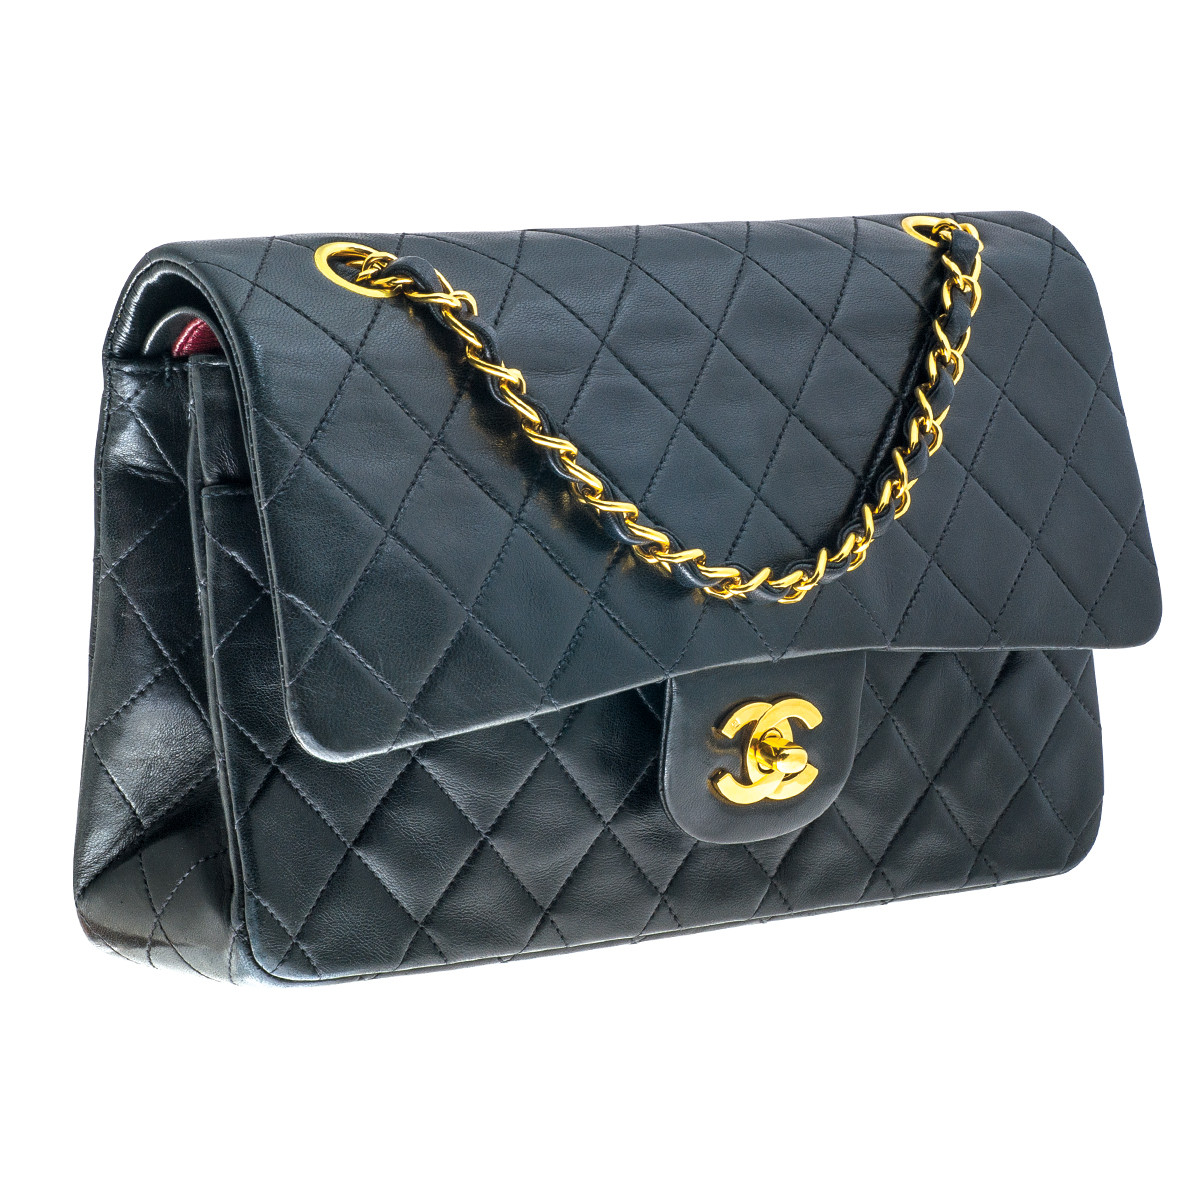 Vintage Chanel Quilted Leather Double Flap Handbag